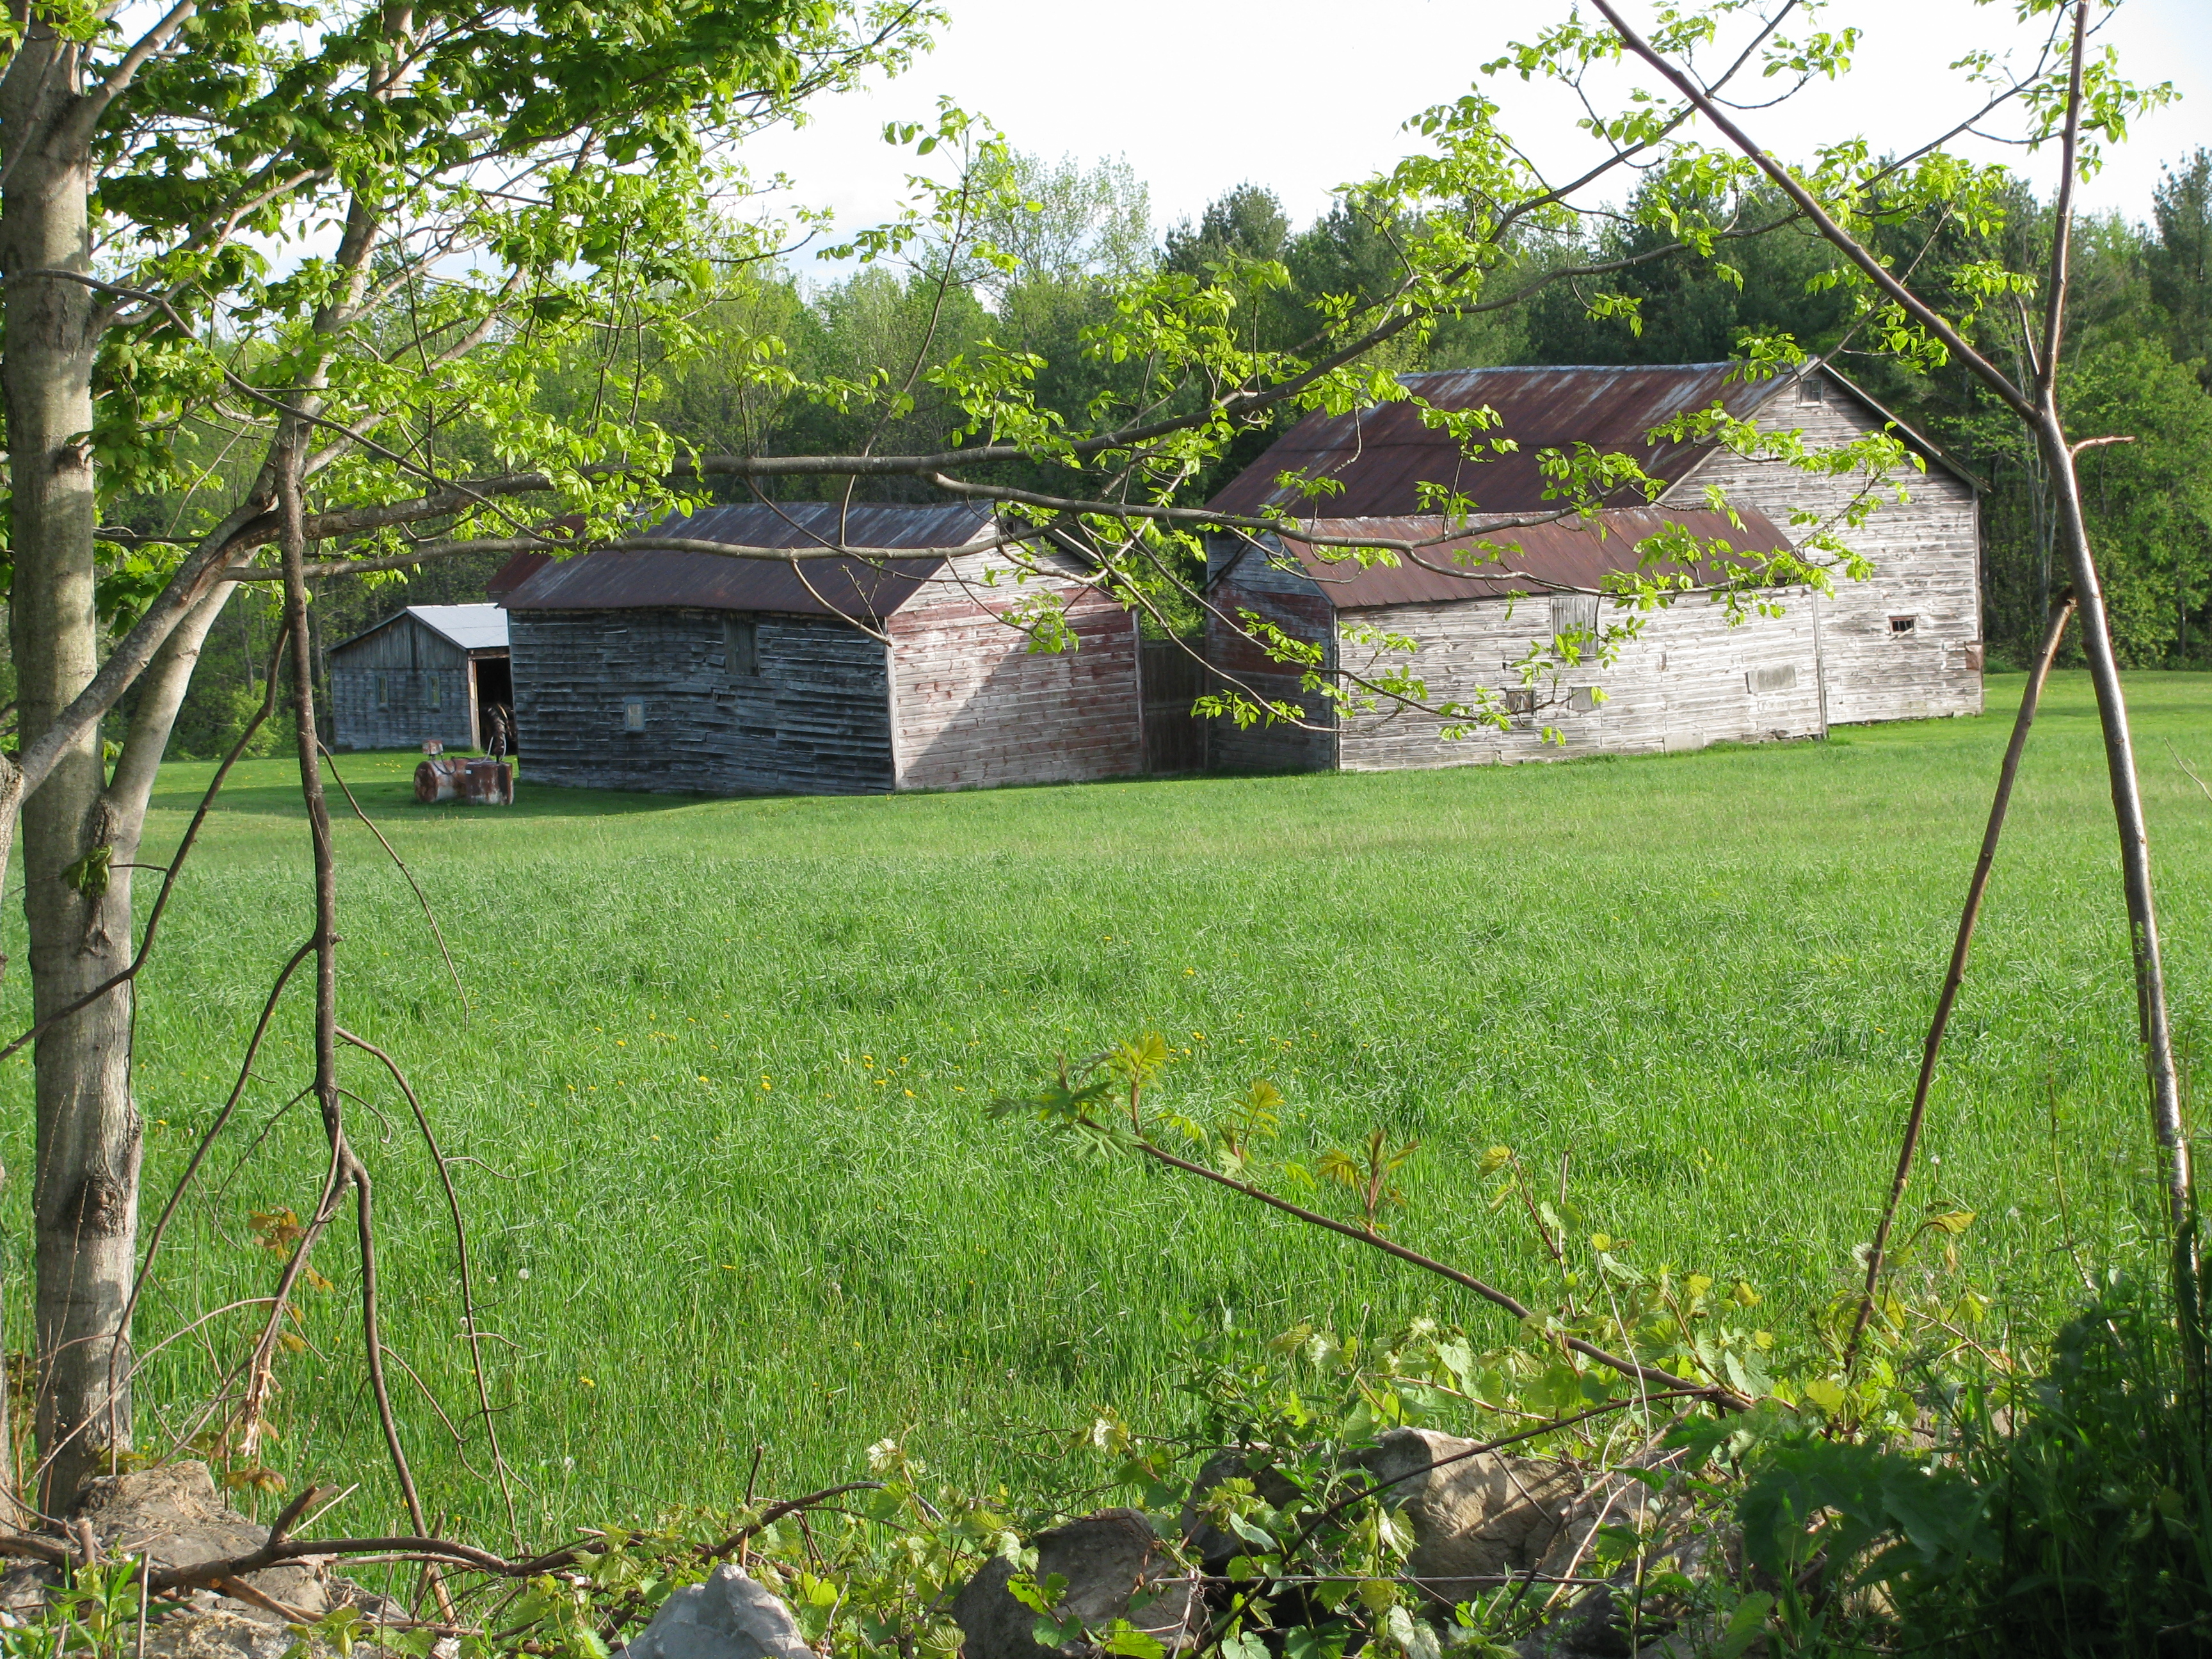 barn-4.jpg